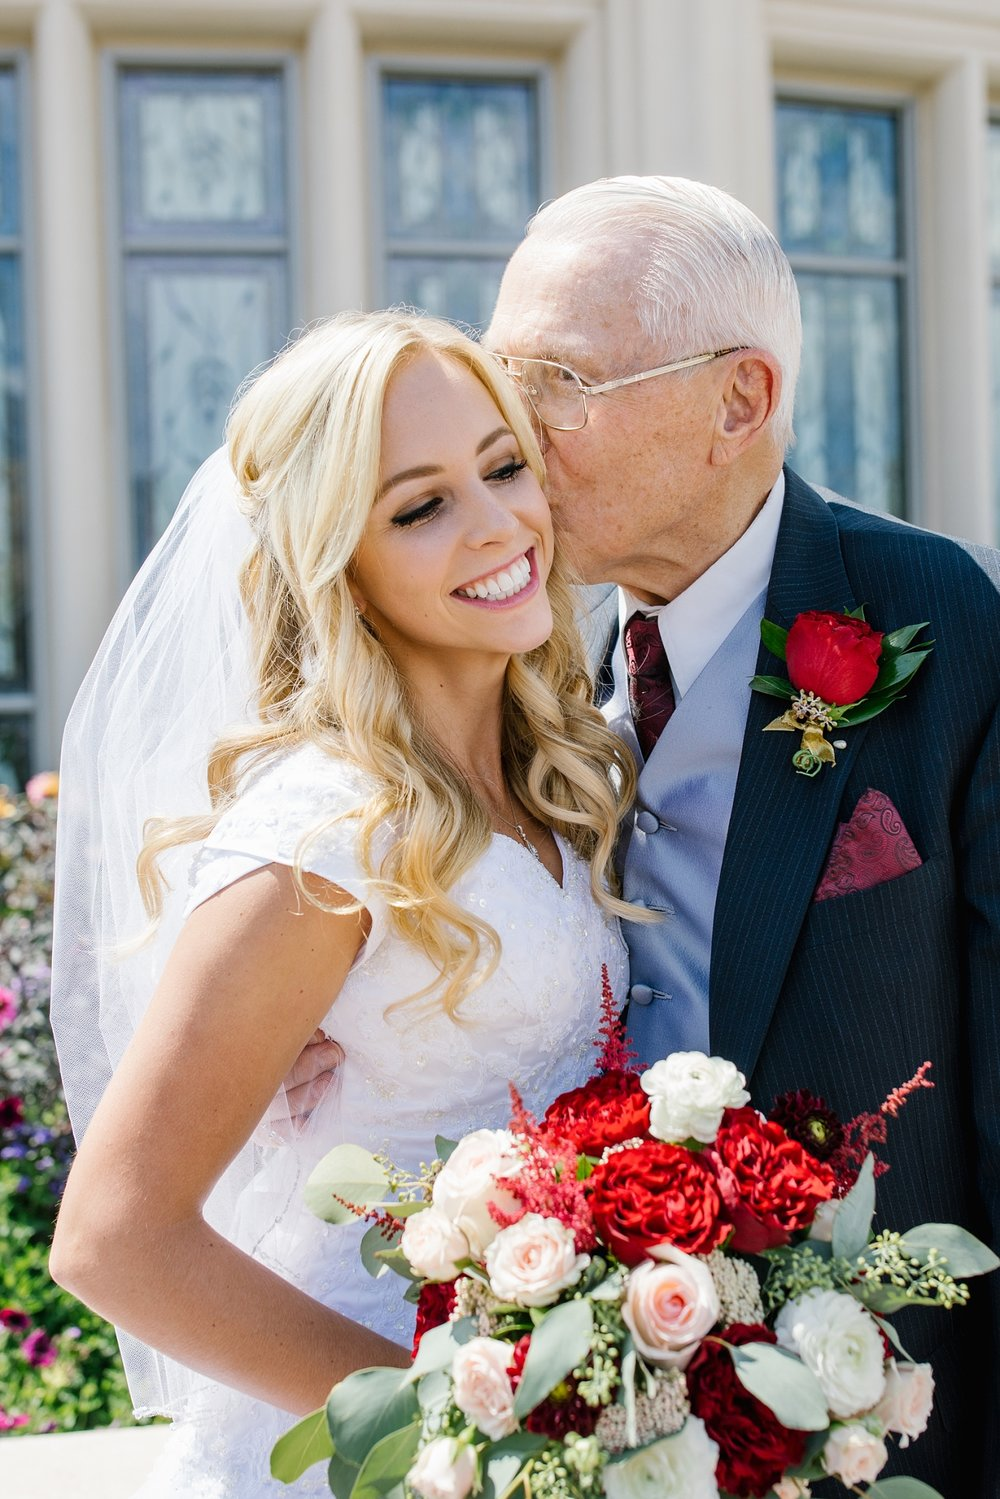 HannahChaseWedding-41_Lizzie-B-Imagery-Utah-Wedding-Photographer-Bridal-Photography-Payson-Utah-Temple-Clarion-Gardens-Catering-and-Events-Center.jpg